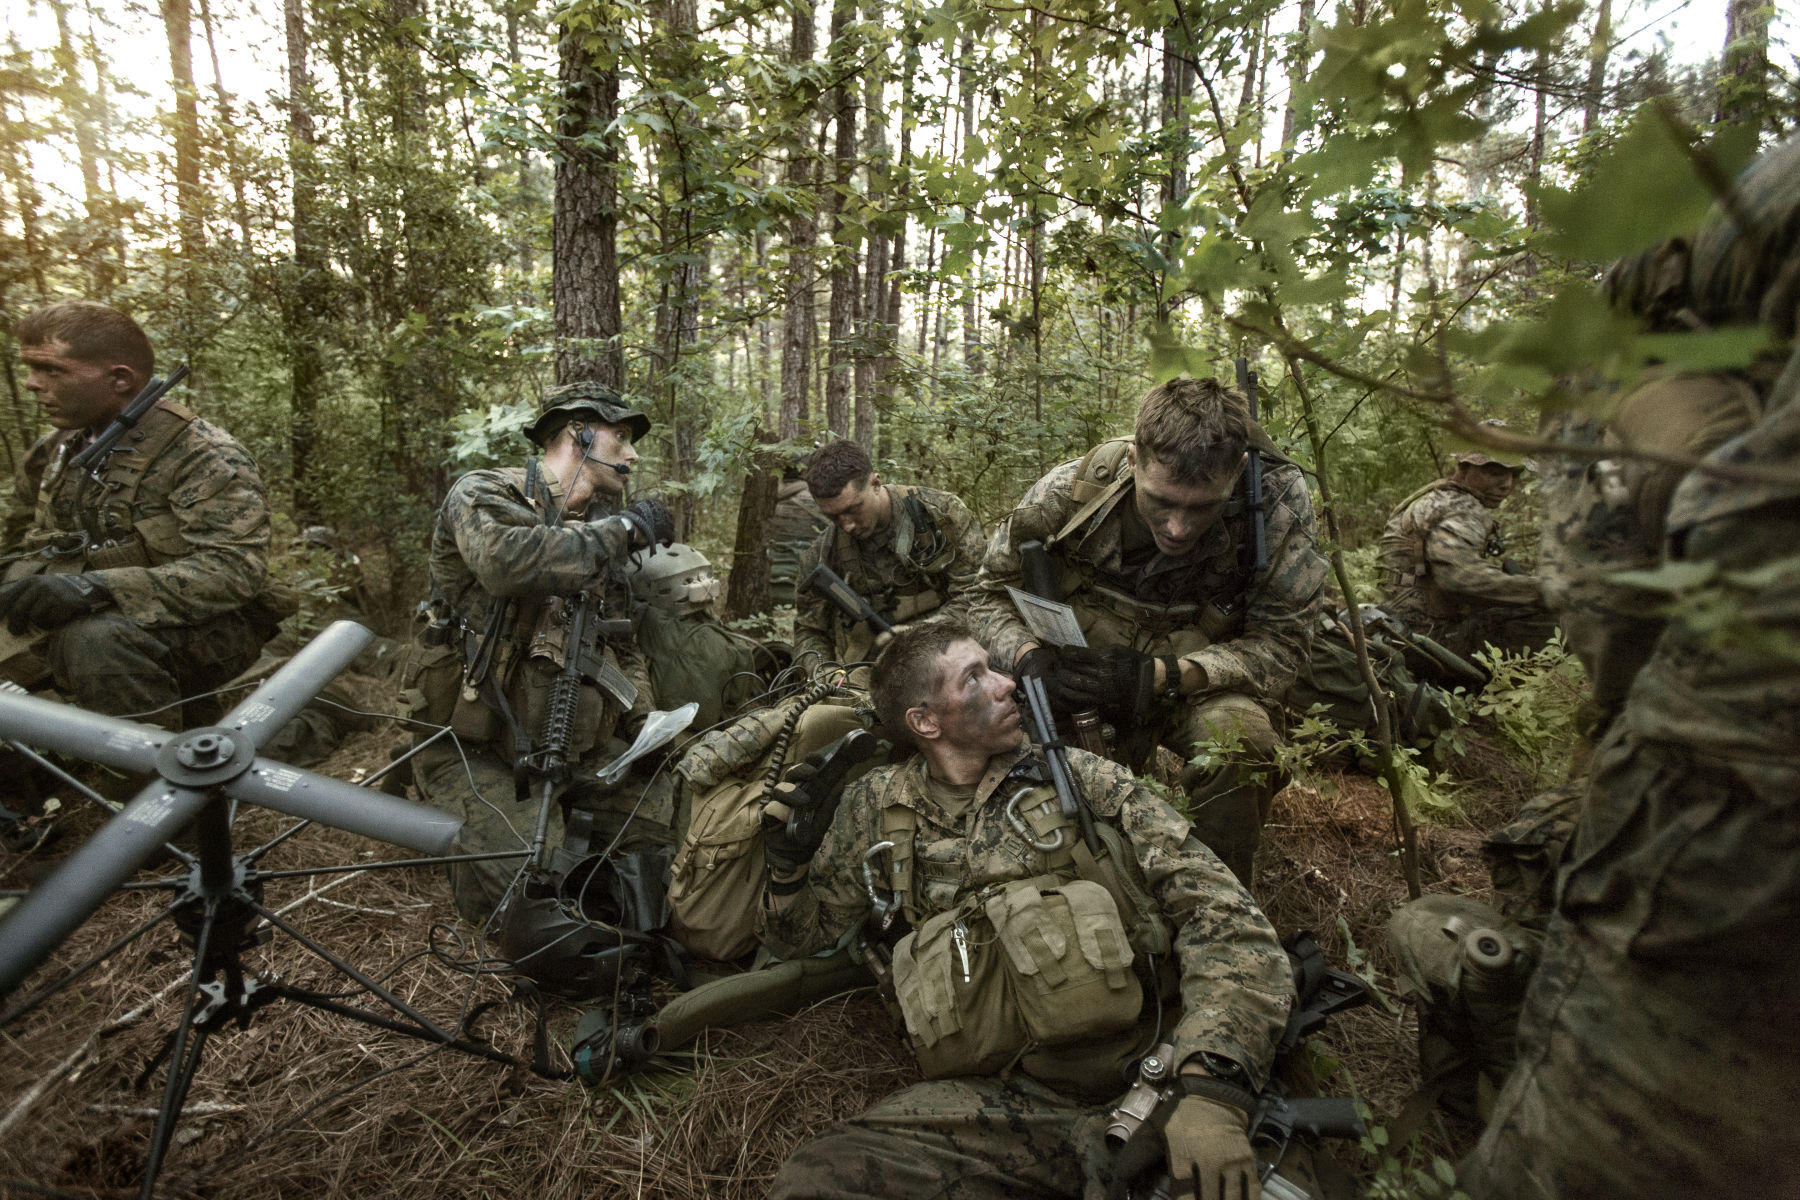 Portable Communications For The Military | Vance Jacobs Photography